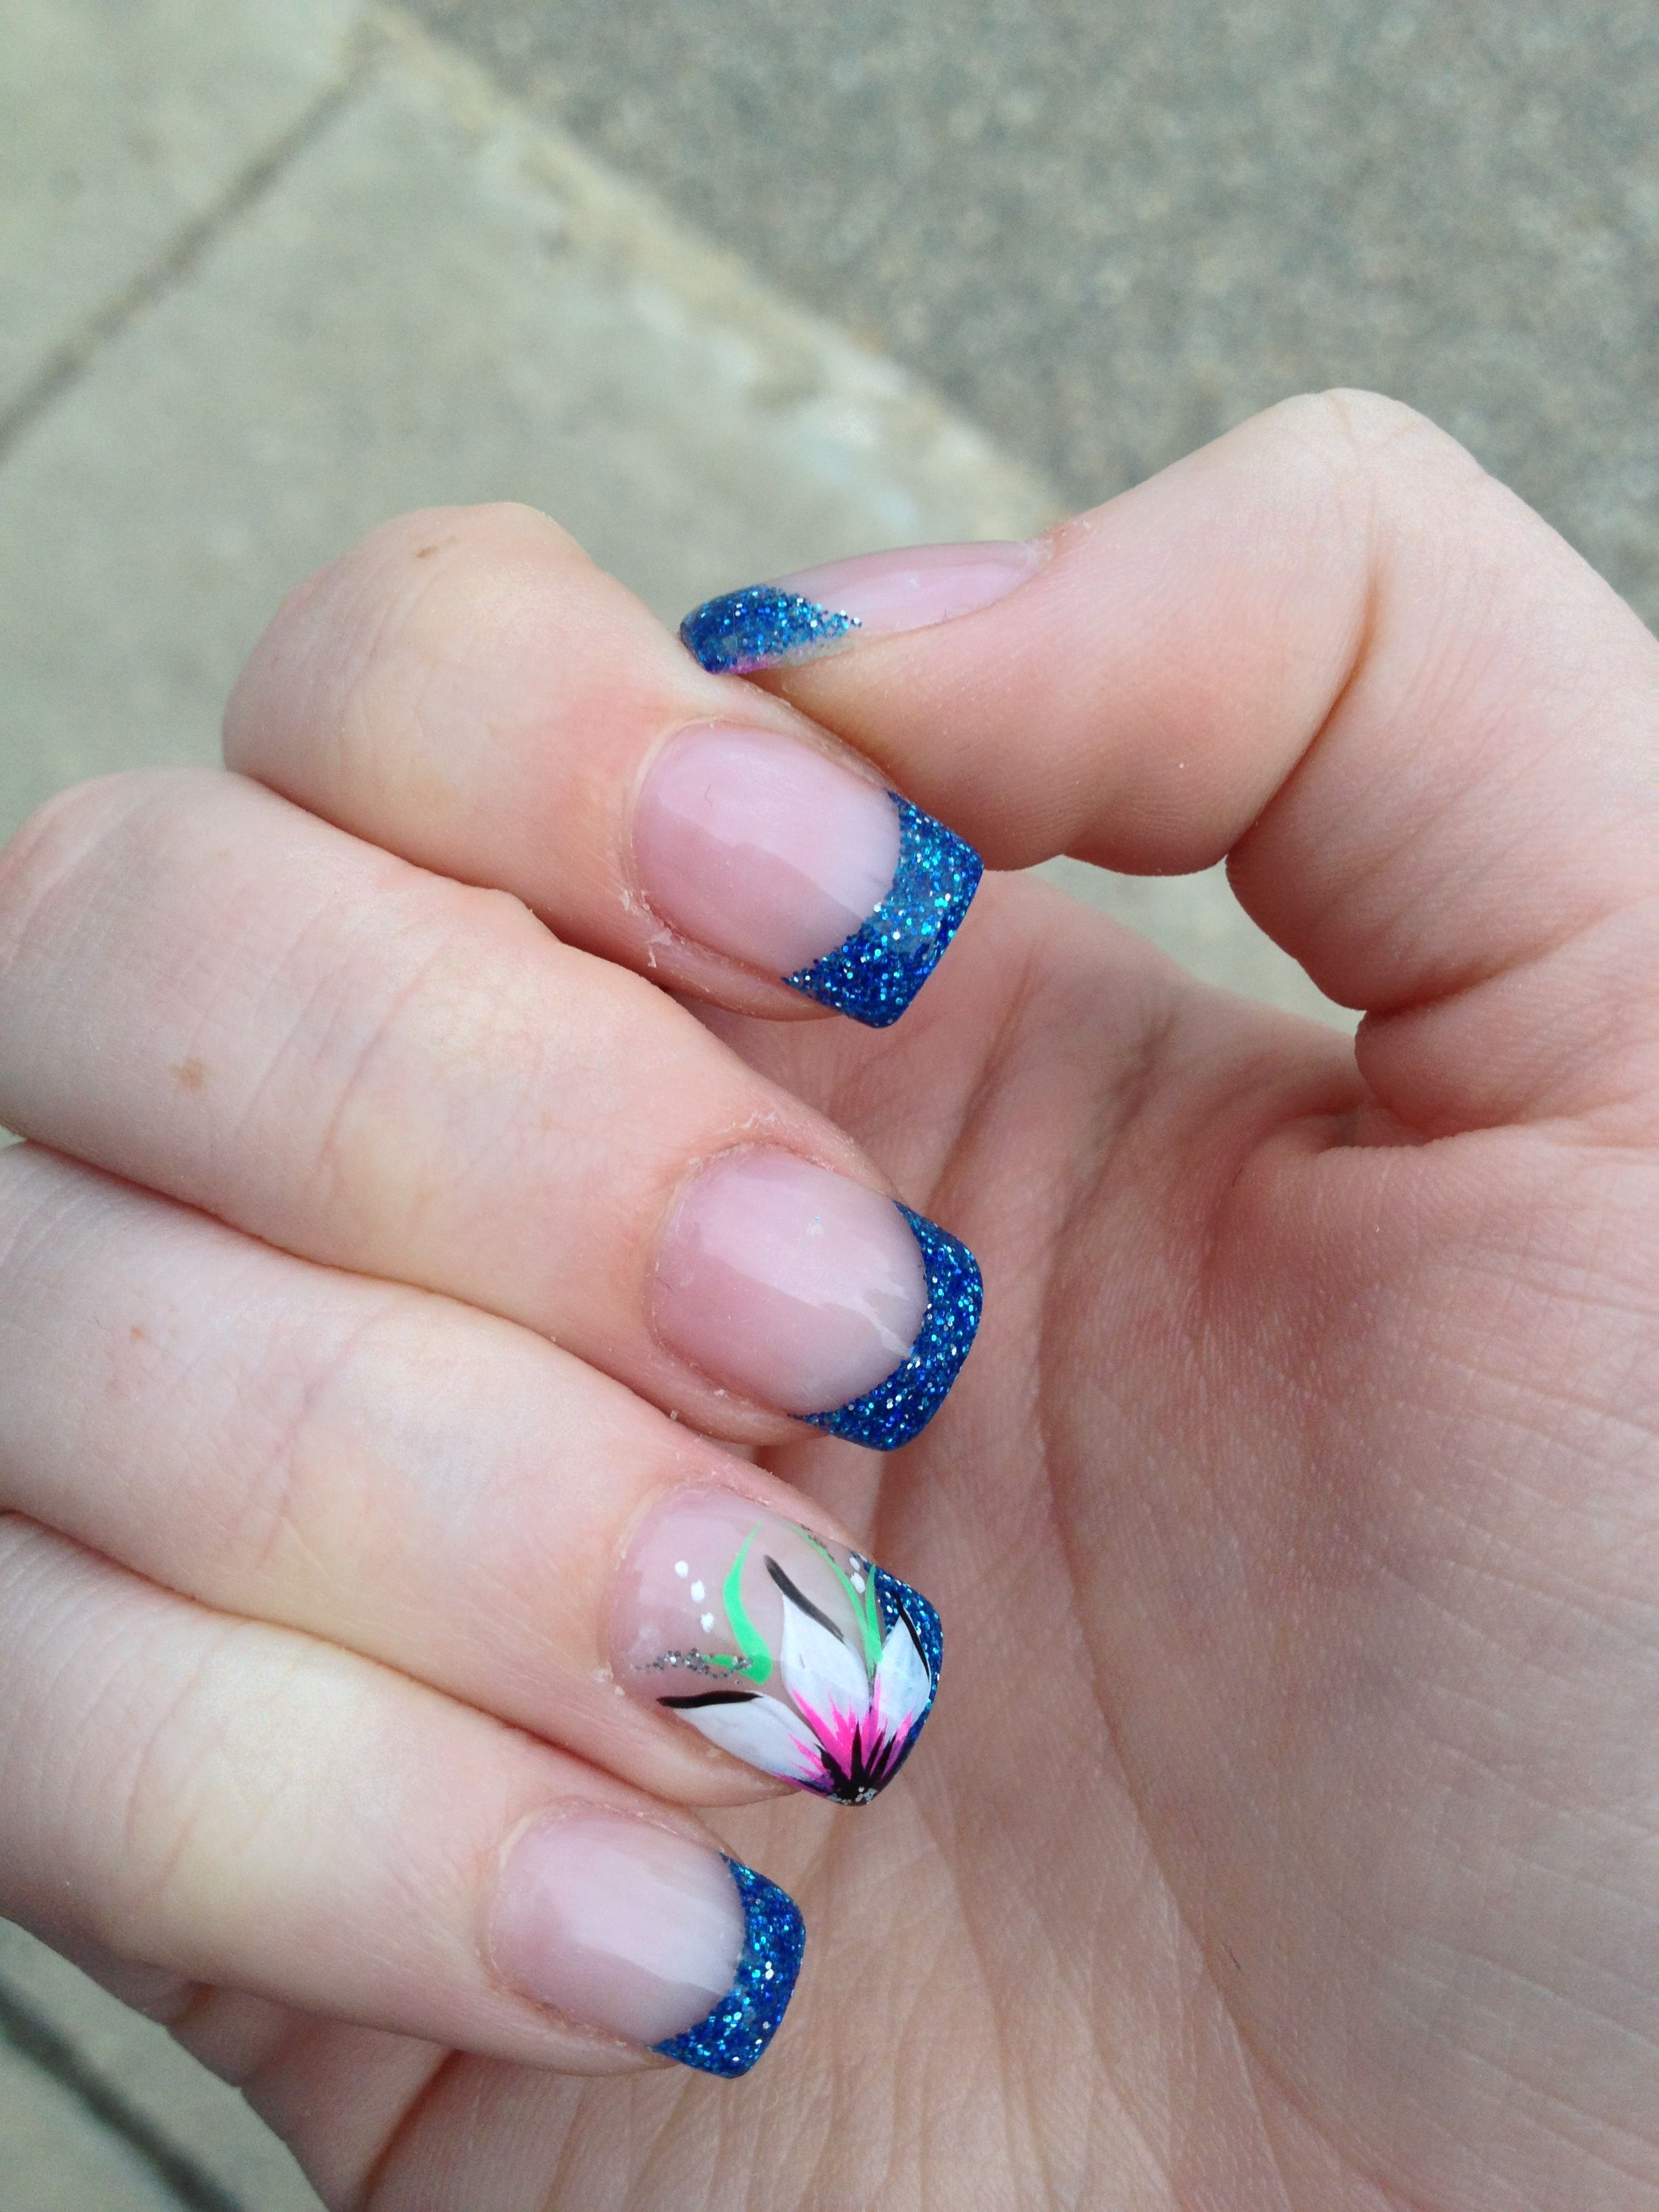 Acrylic nails with a blue sparkle tip and a flower nails